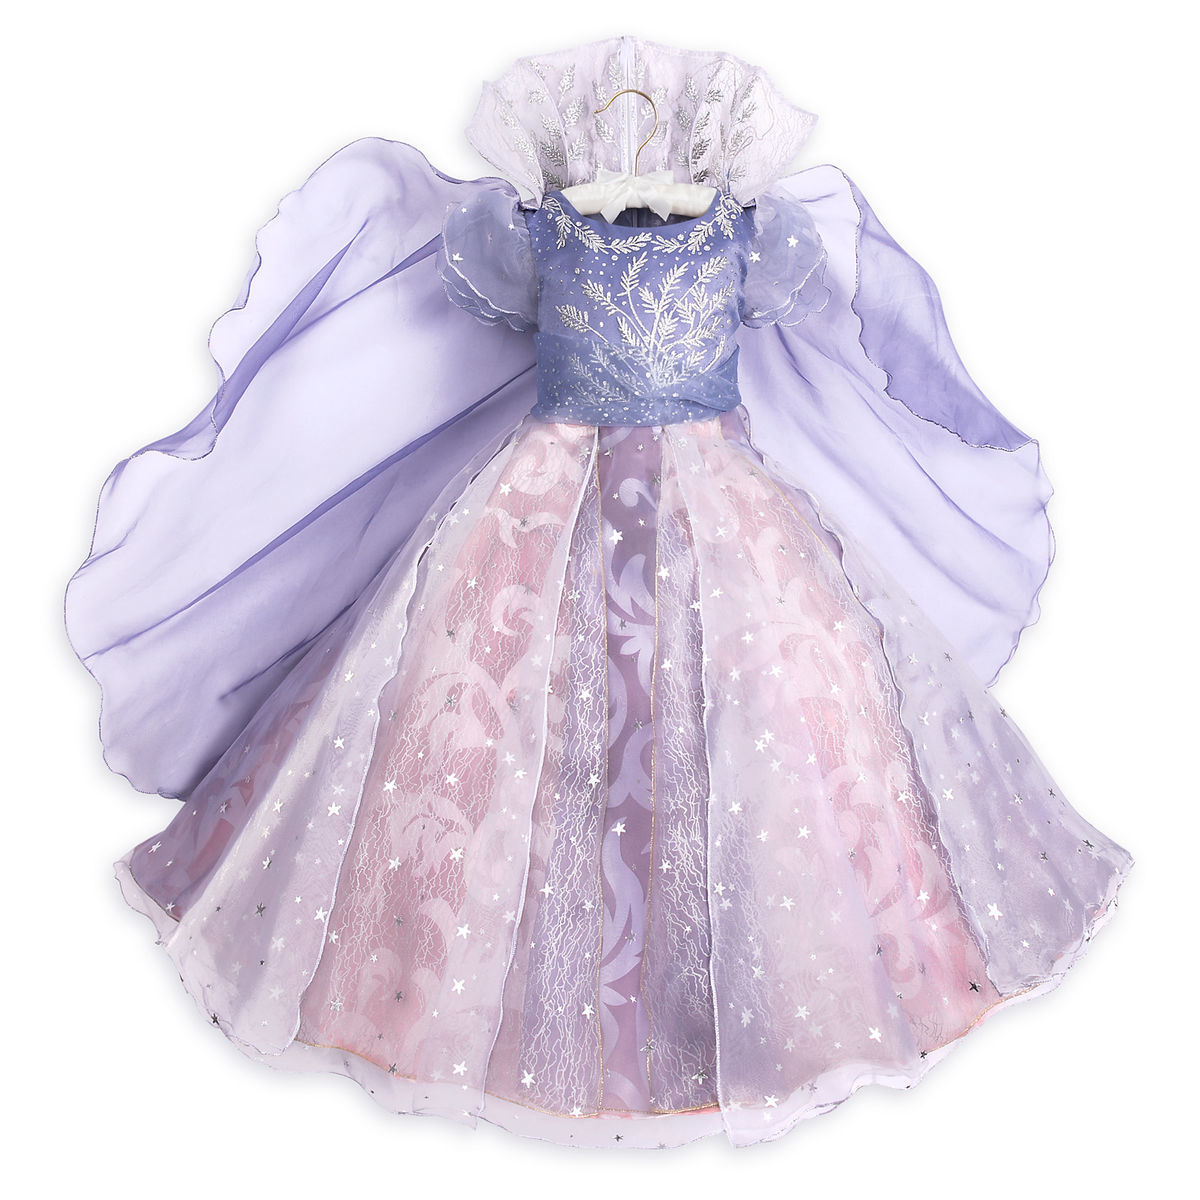 d6ab618f14d Clara Light-Up Costume for Kids   The Nutcracker and the Four Realms